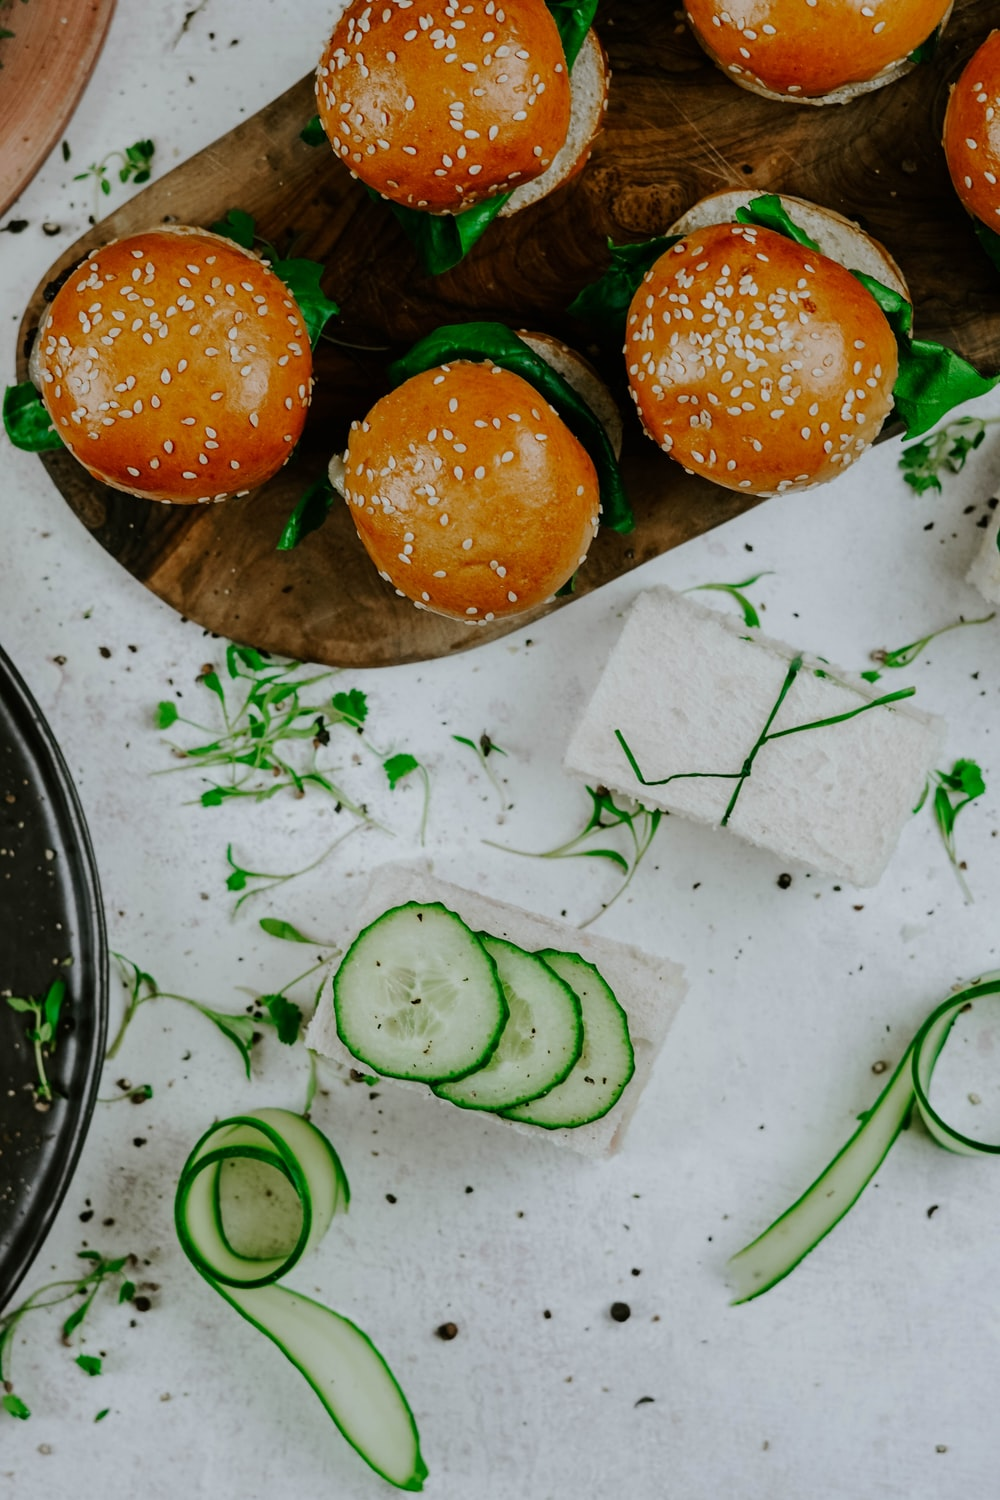 burgers on wooden surface near cucumber slices